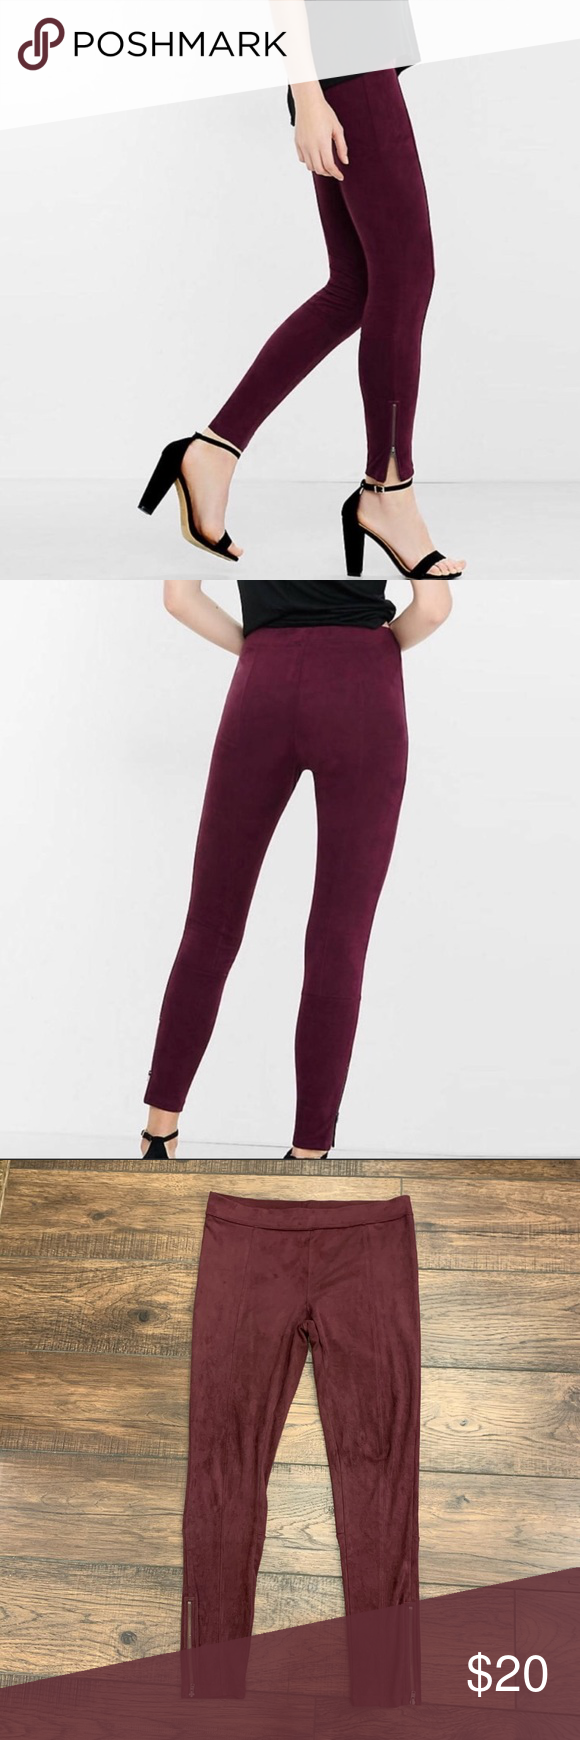 Express Plum Faux Suede Ankle Zip Moto Leggings M Faux Suede Ankle Zip Legging In Plum Color Get Up Close And Personal With Luxe Sed Leggings Are Not Pants Pants For